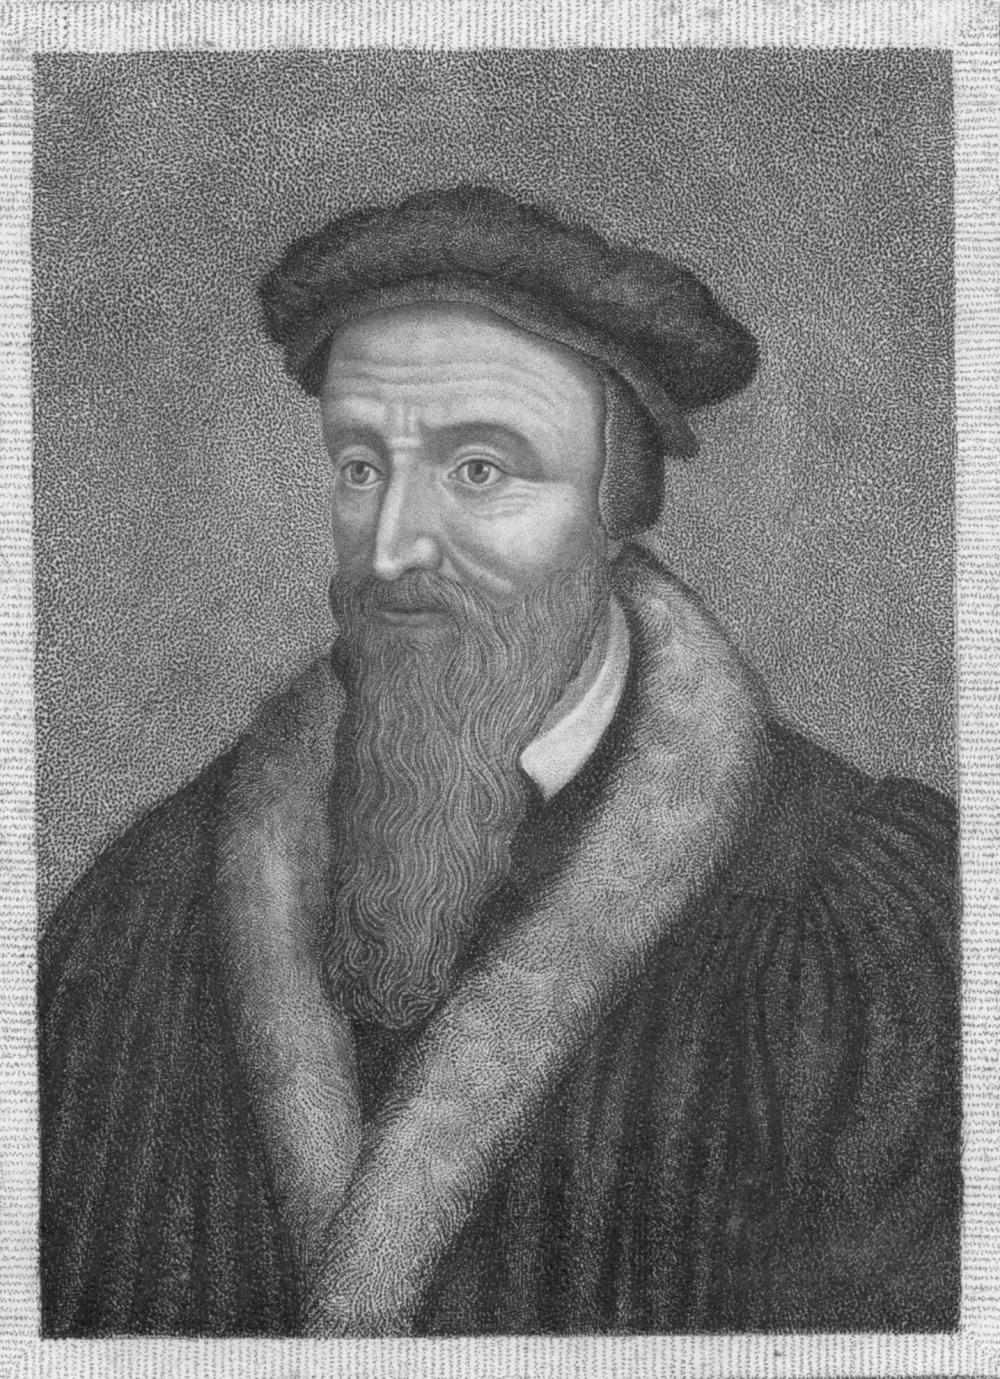 john calvin thesis John calvin, or to give him his proper french name, jean cauvin, was born in noyon, picardie, france on july 10th, 1509 this was an ancient cathedral city and was an important centre for the roman catholic church in northern europe.